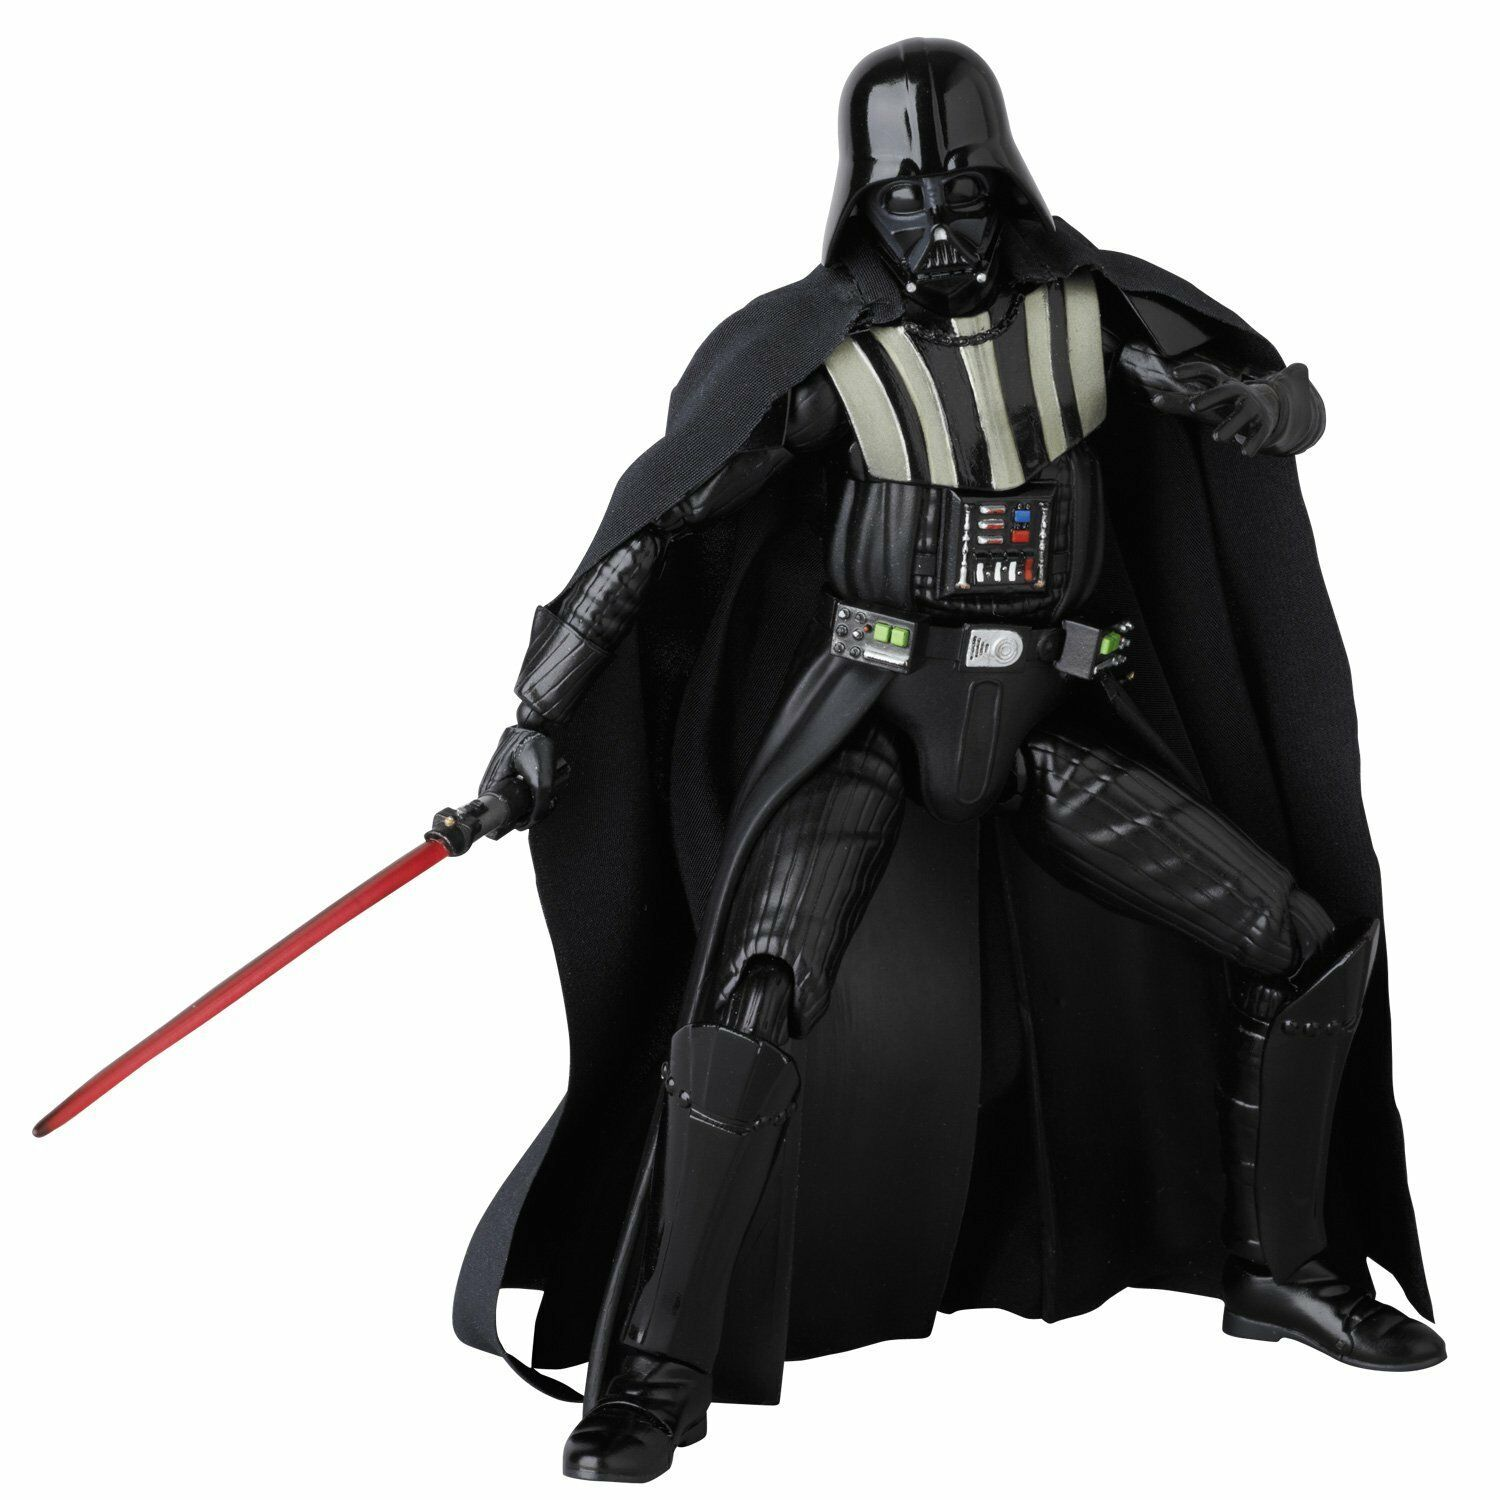 Medicom Toy MAFEX Star Wars Darth Vader Action Figure Japan